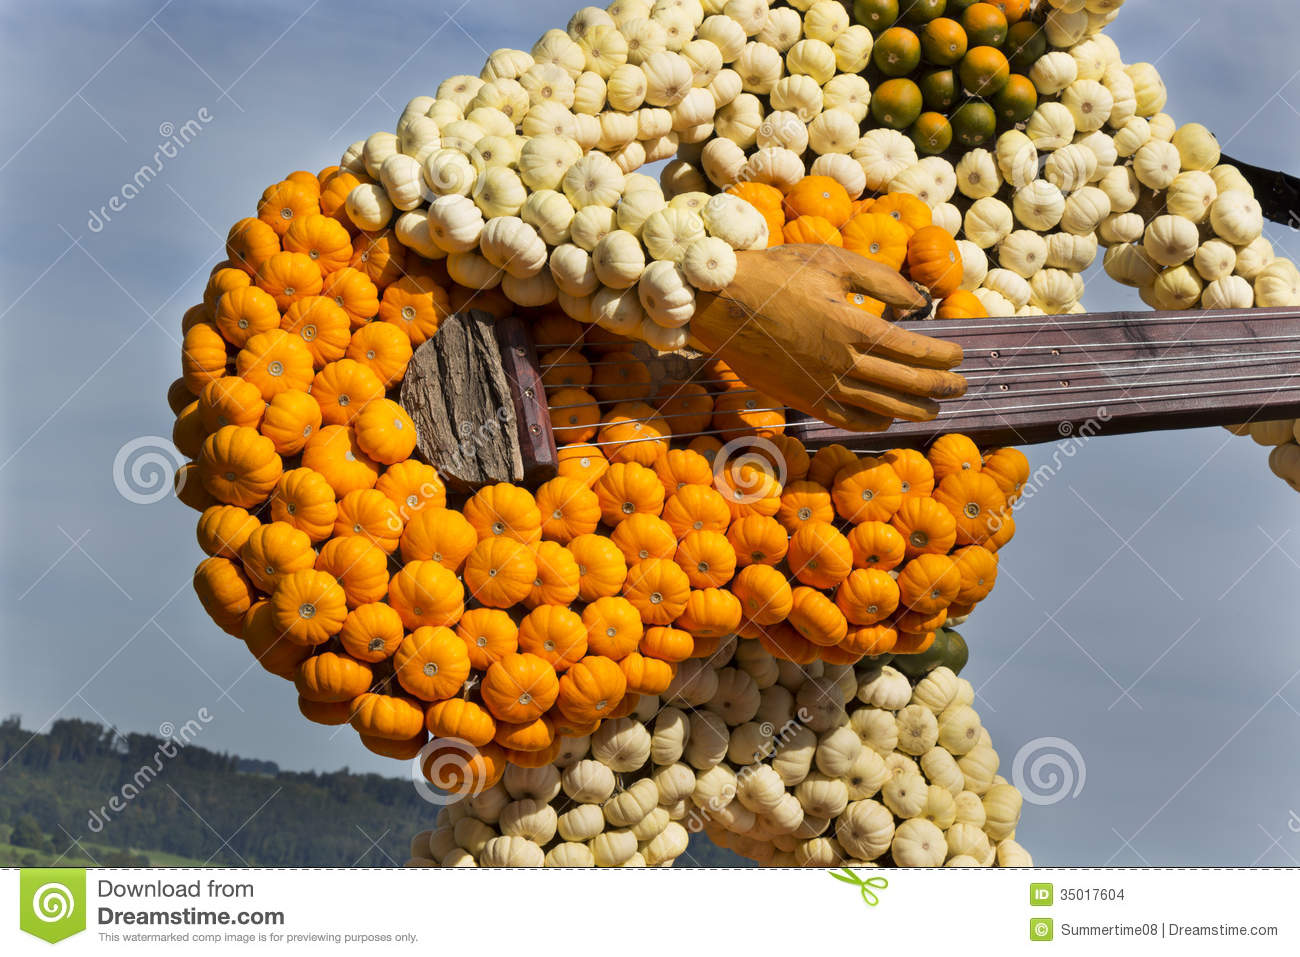 Farm art guitar and guitarist made of small orange, green and white pumpkins close-up